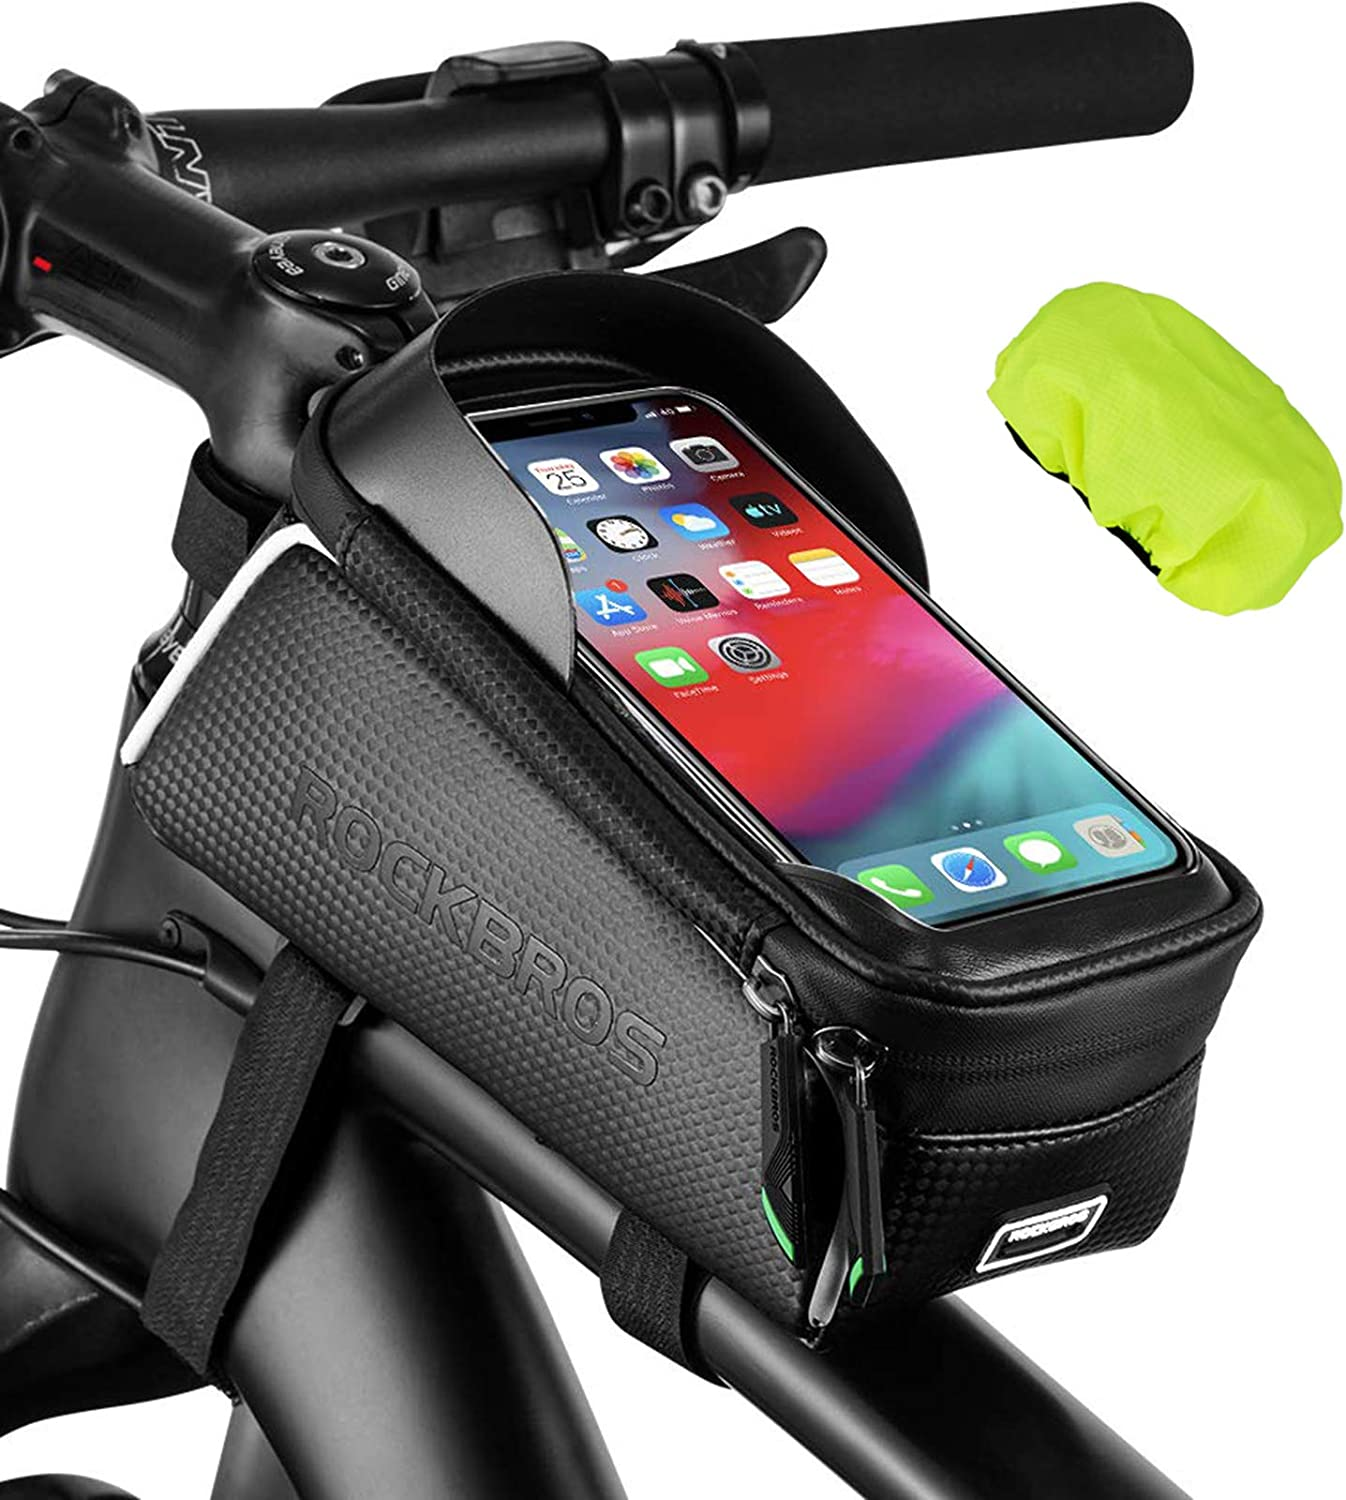 ROCKBROS Bike Top Tube Bag Bicycle Front Frame Bag Waterproof Bike Pouch Pack Bike Phone Bag Cycling Accessories Pouch for Mountain Road Bike